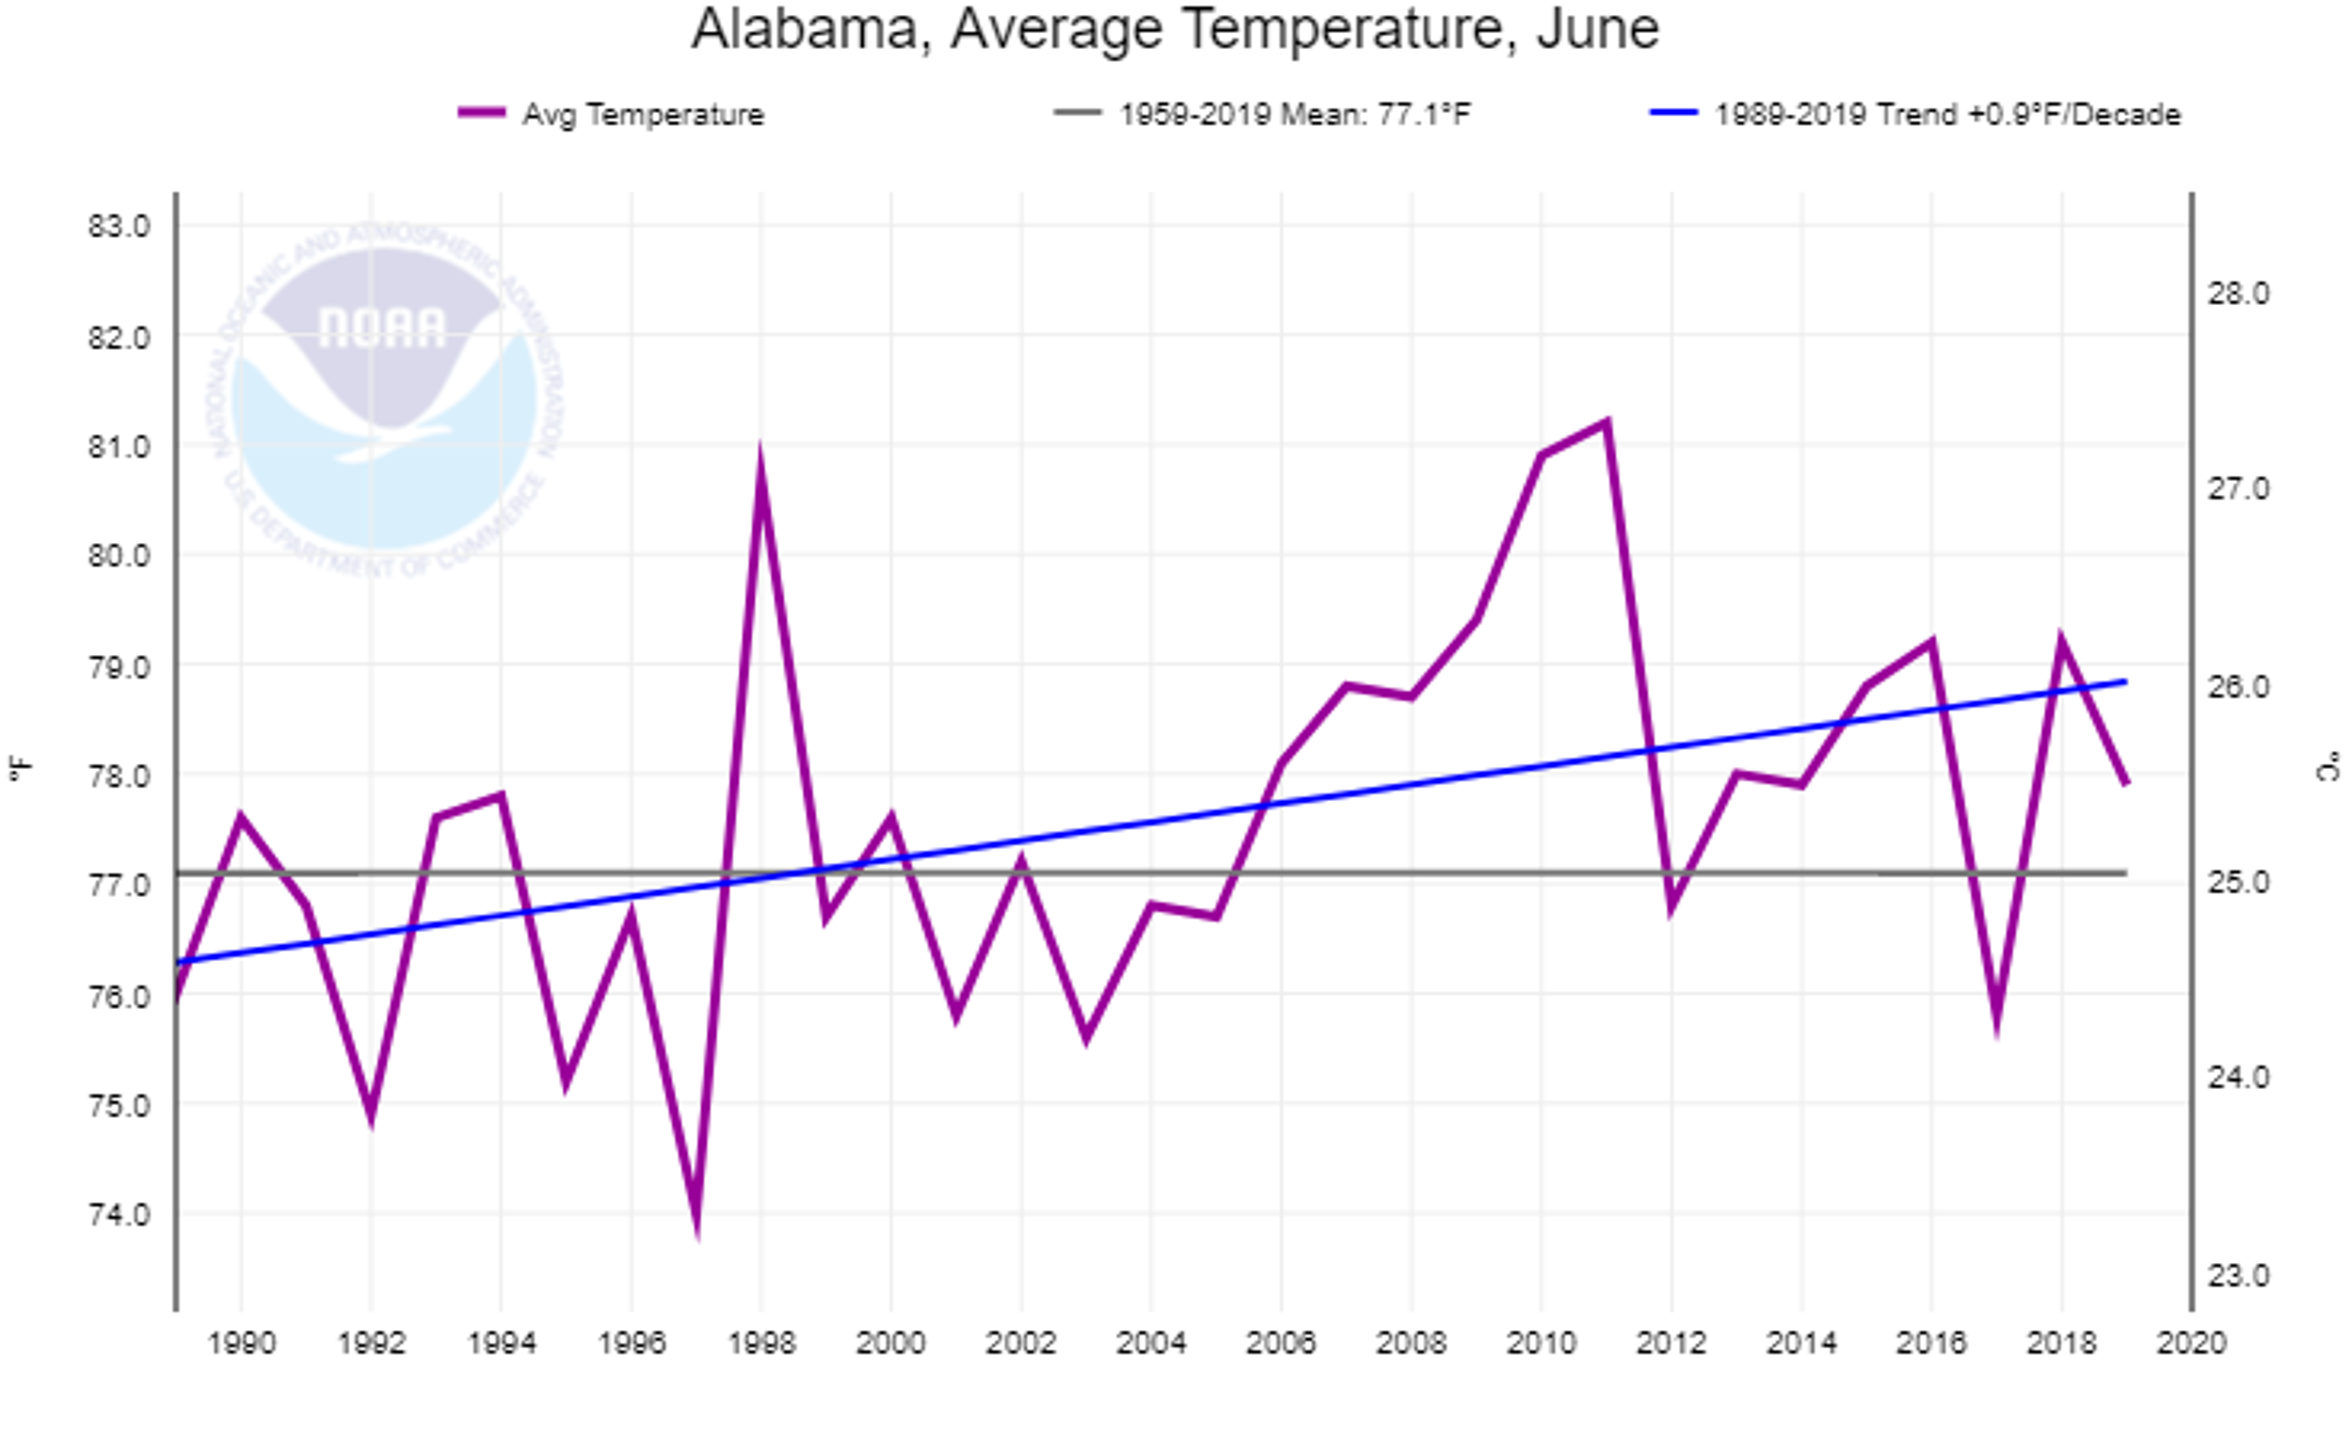 Average June temperatures in Alabama have climbed in the last 30 years.